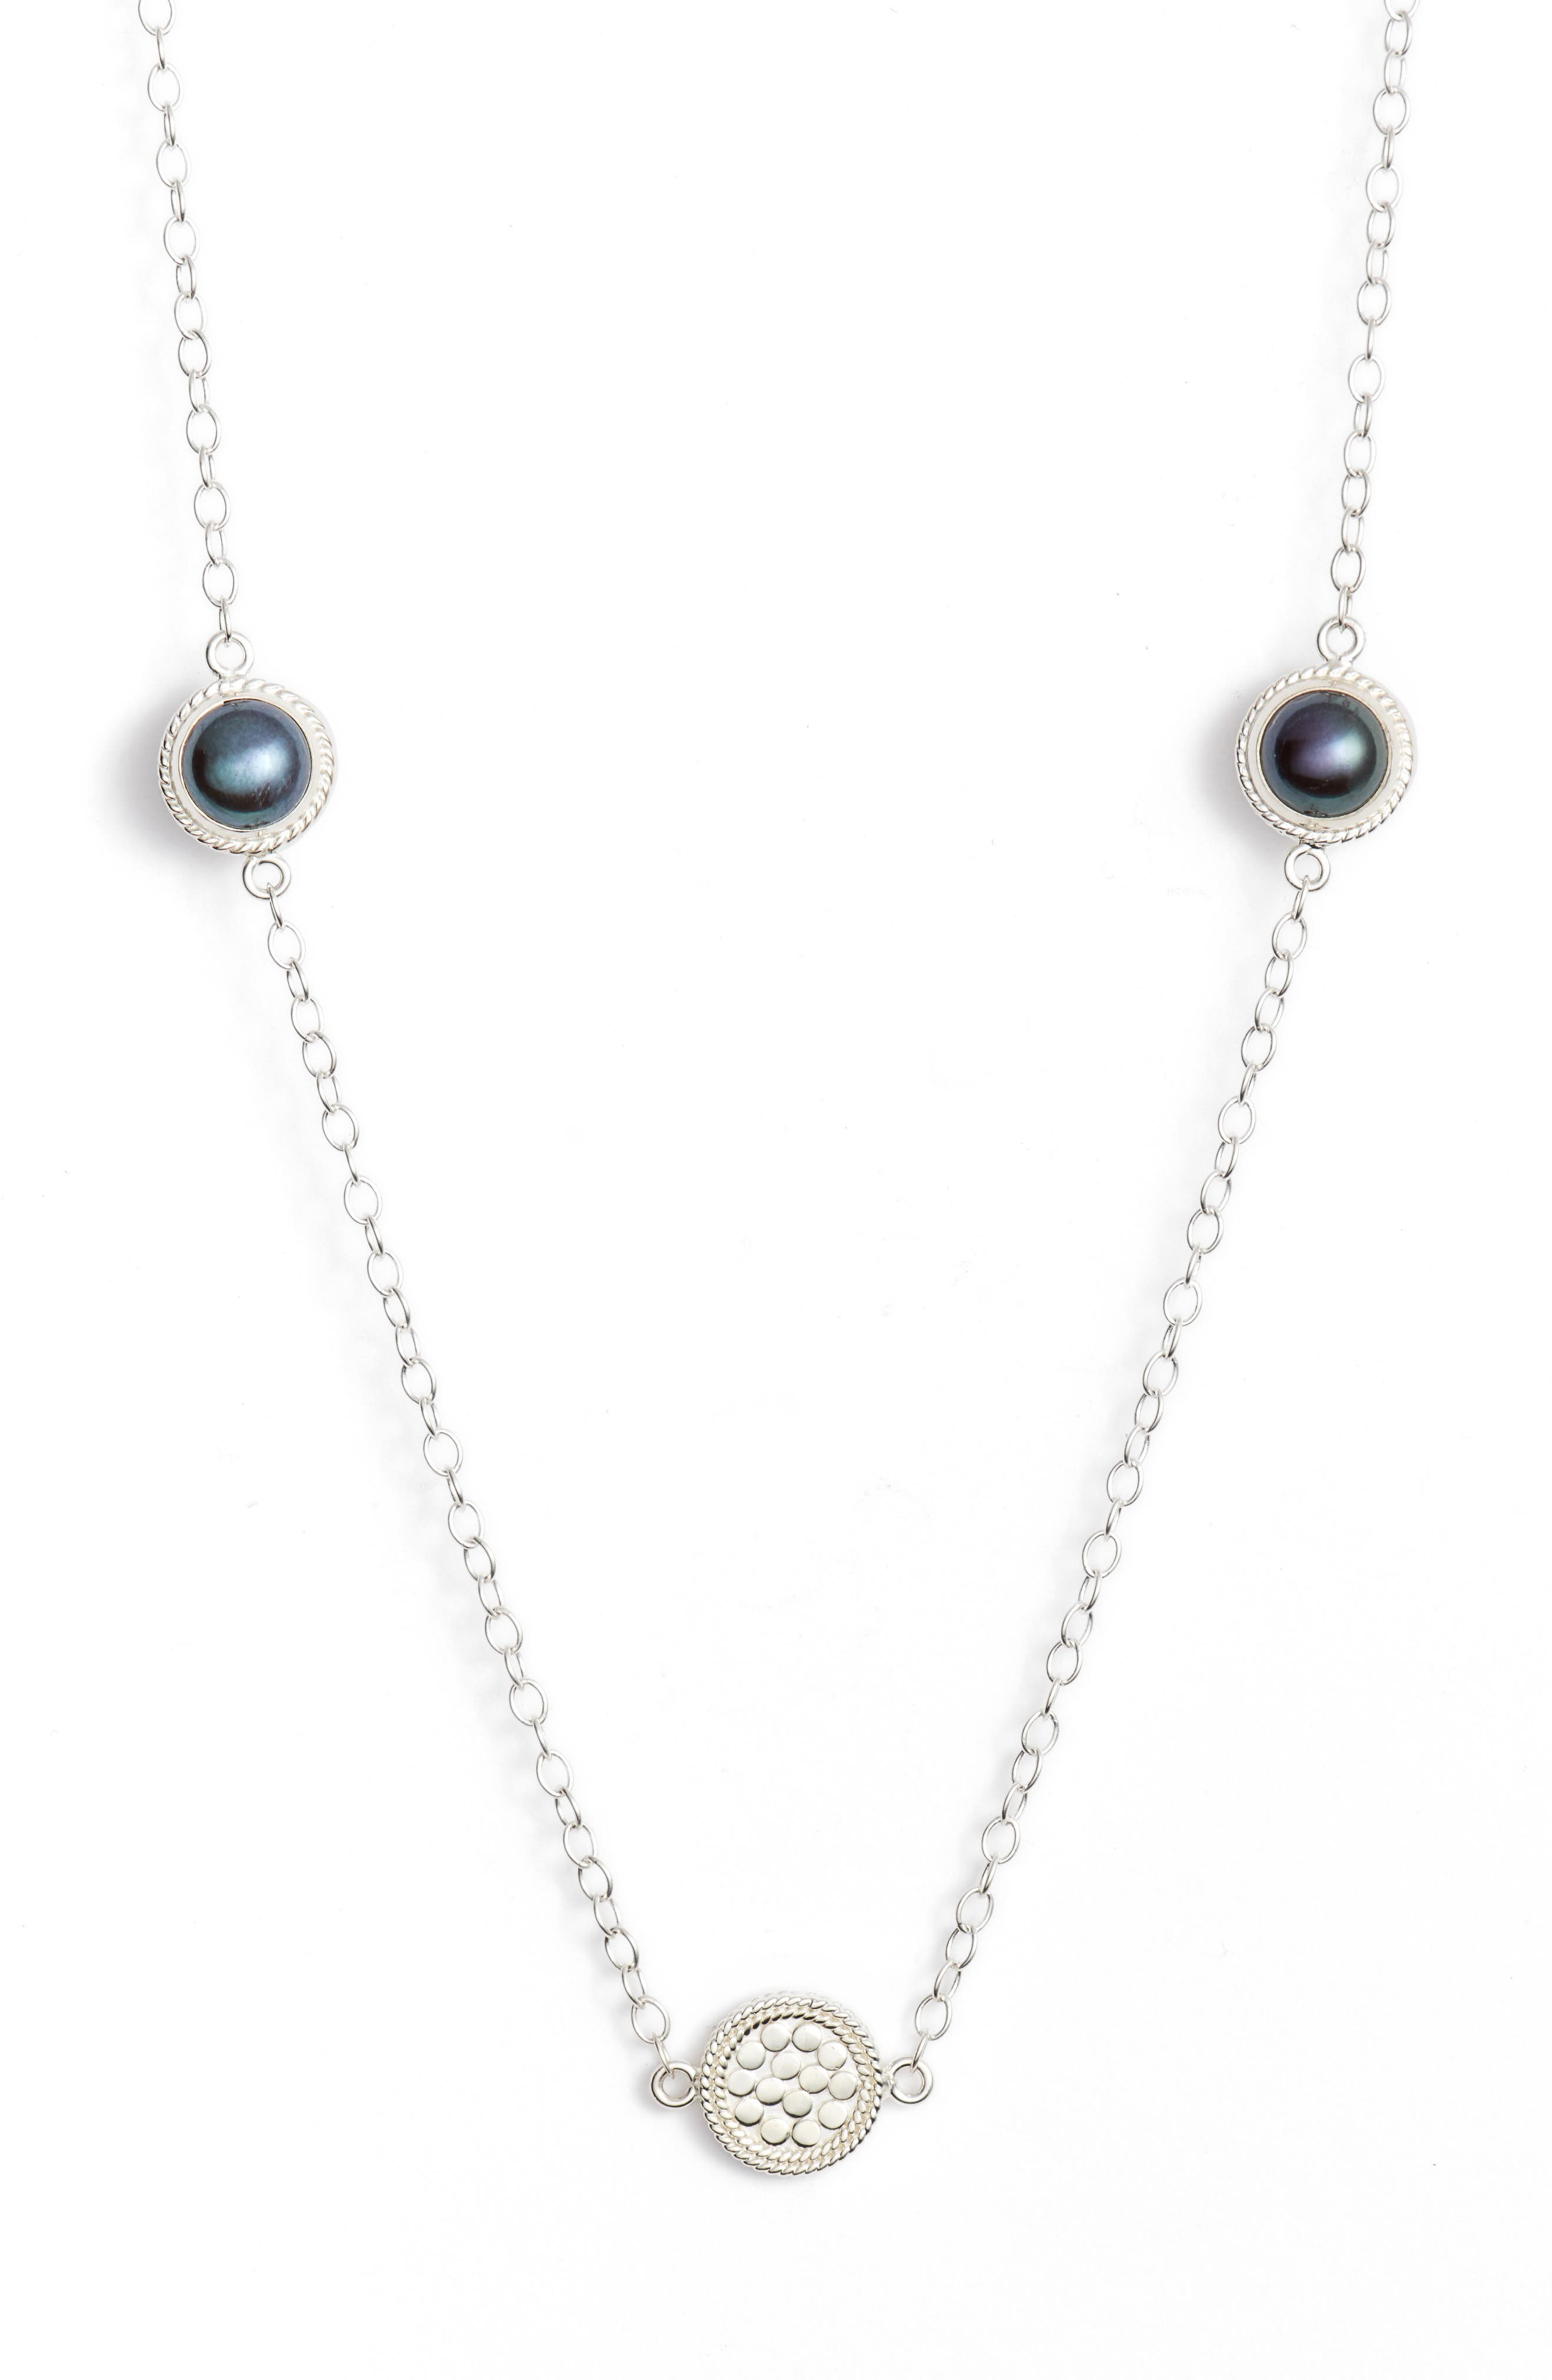 Genuine Blue Pearl Station Necklace,                             Alternate thumbnail 2, color,                             Silver/ Blue Pearl